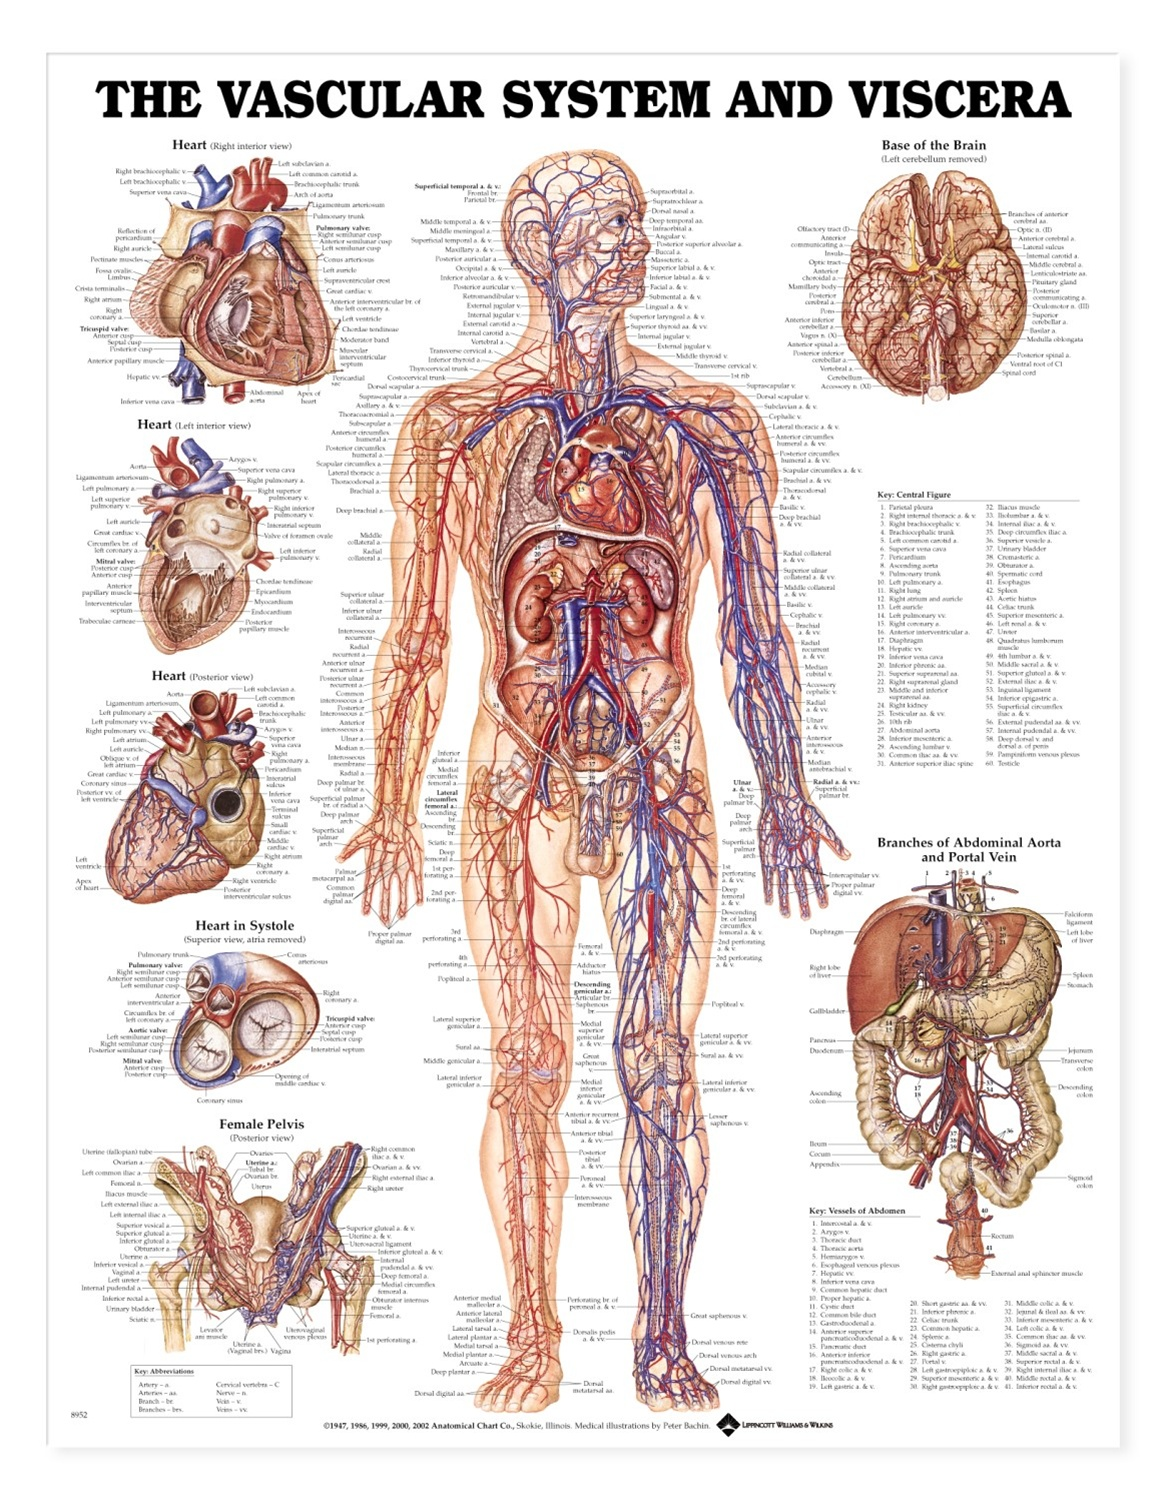 Vascular system and viscera anatomical chart anatomy models and